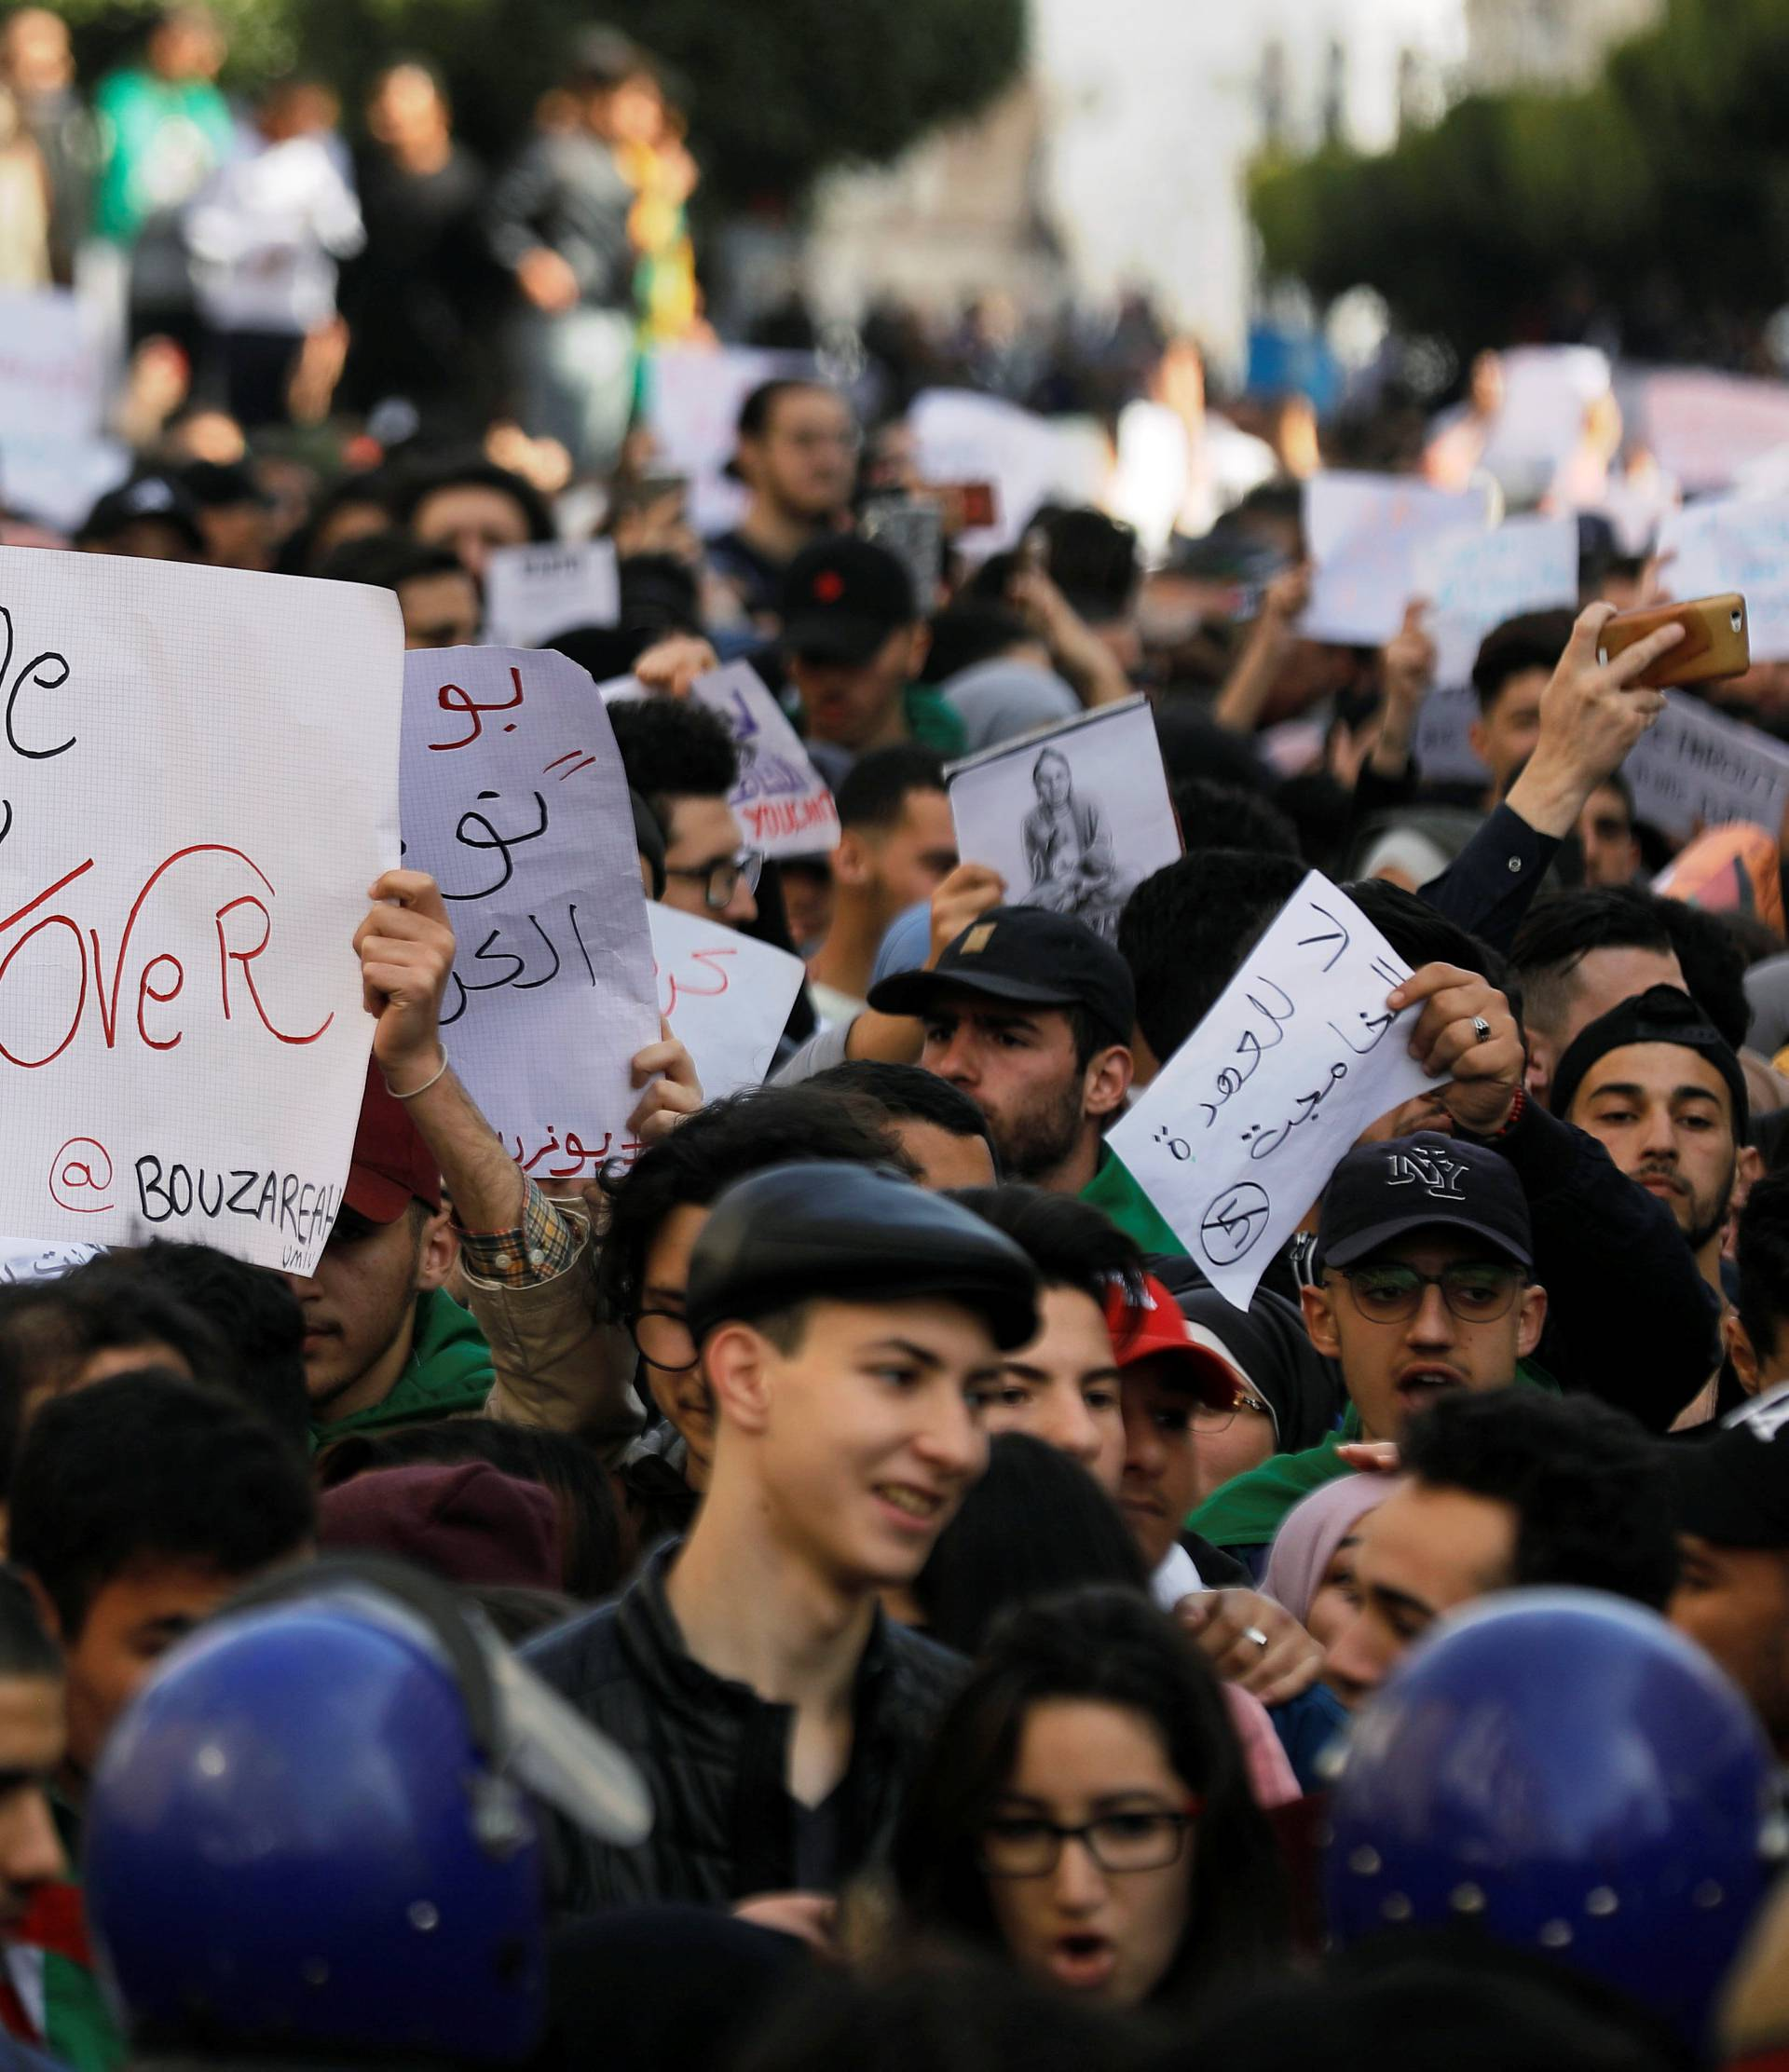 Students take part in a protest to denounce an offer by President Abdelaziz Bouteflika to run in elections next month but not to serve a full term if re-elected, in Algiers